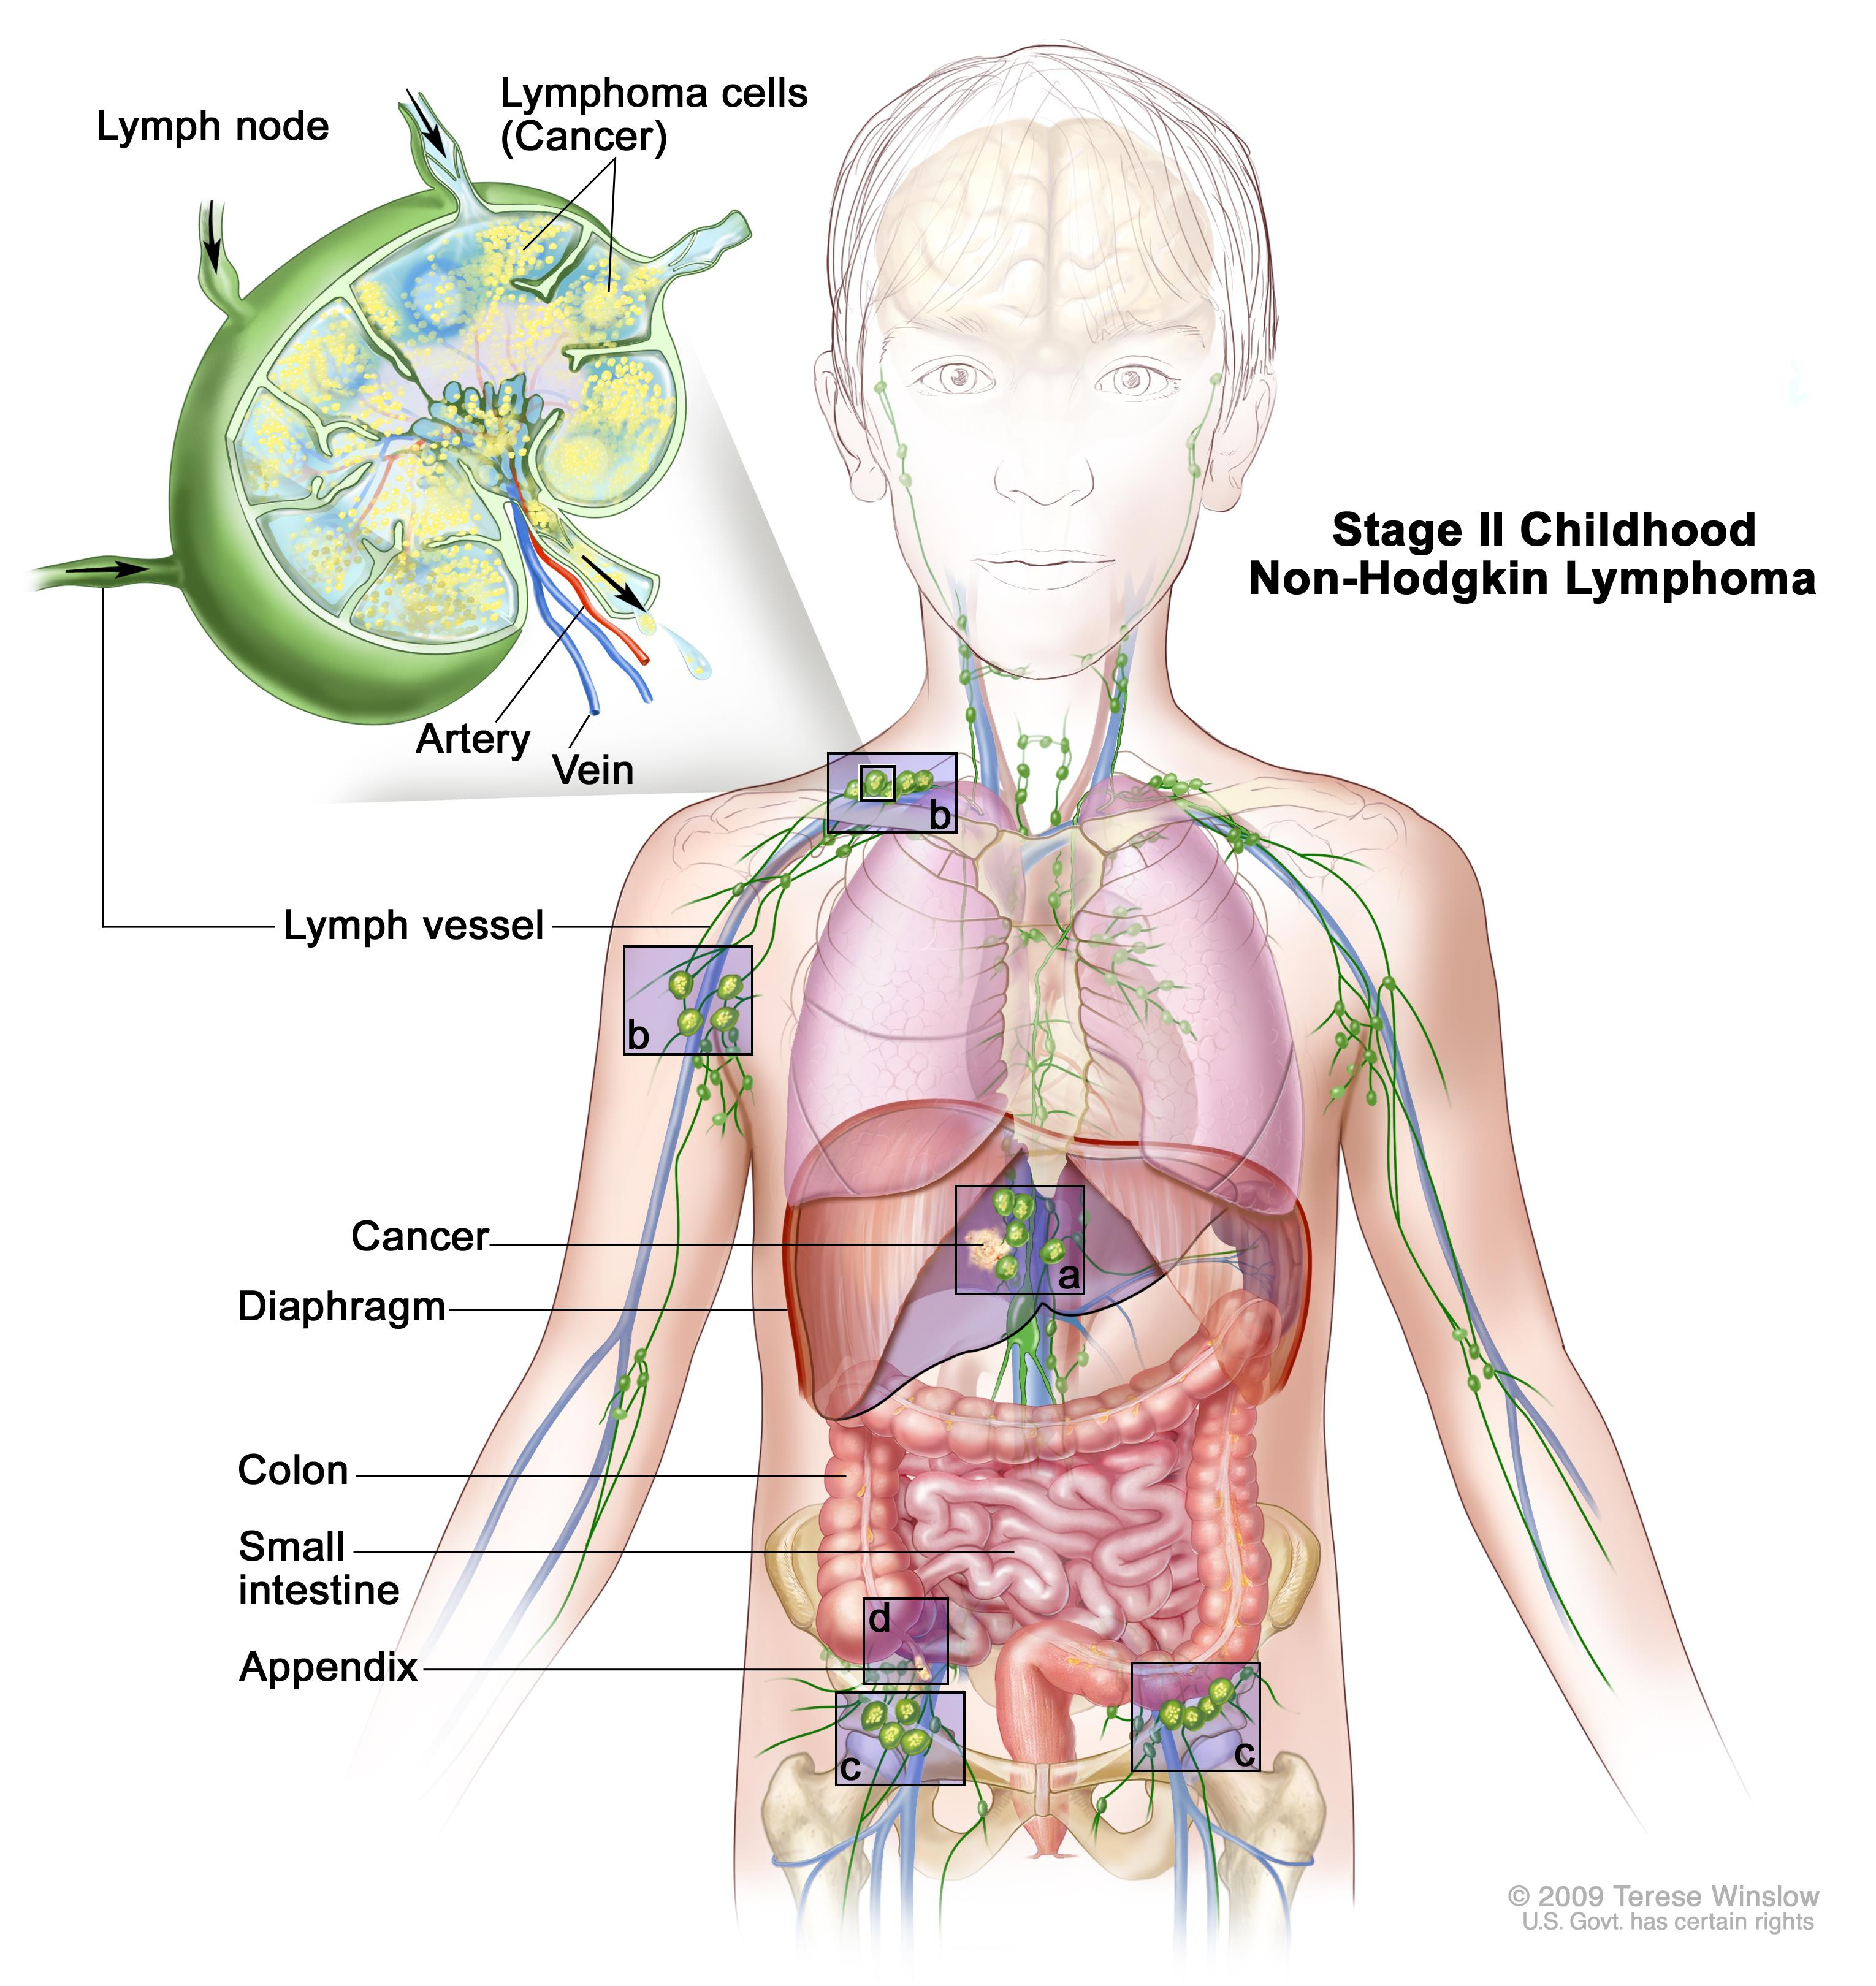 Stage II childhood non-Hodgkin lymphoma; drawing shows cancer in lymph node groups above and below the diaphragm, in the liver, and in the appendix. The colon and small intestine are also shown.  An inset shows a lymph node with a lymph vessel, an artery, and a vein. Lymphoma cells containing cancer are shown in the lymph node.